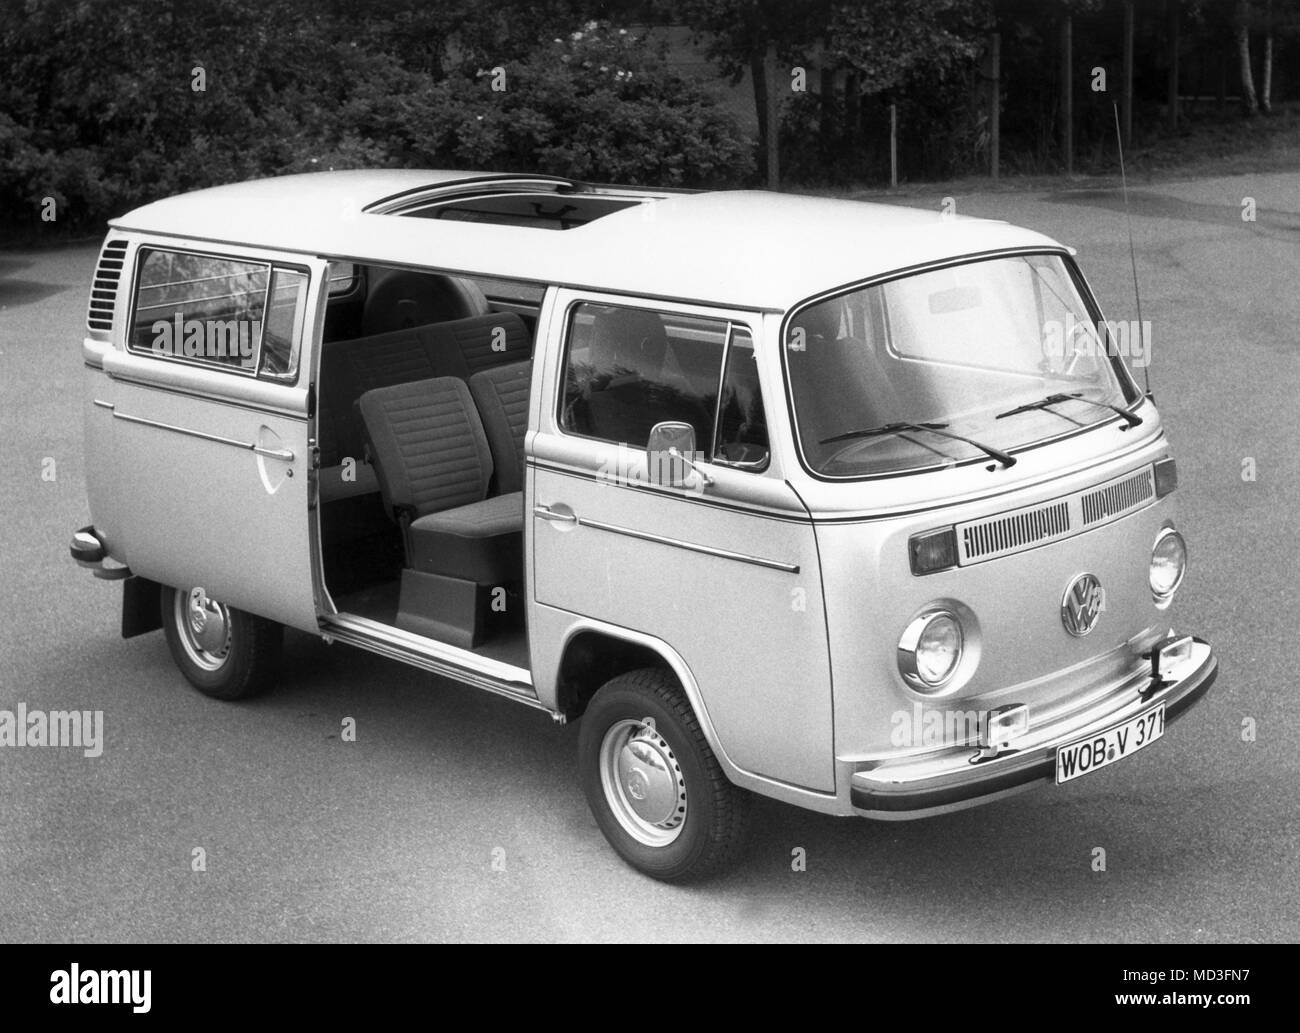 The Volkswagen Bus as a prominent representative of the VW Type 2 series will be offered by VAG dealers in an eight-seat version from September 22, 1978. The special model offers active and passive safety and comfort, including steel belt tires, heated rear window, halogen headlamps, dimming rear and rear reversing lights, headrests, three-point automatic safety belts for driver and front passenger, a crank-crank roof, and a daily mileage payer. The special model with the 2-liter rear engine costs 19,495 marks (recommended retail price).     (c) dpa - Report     | usage worldwide - Stock Image